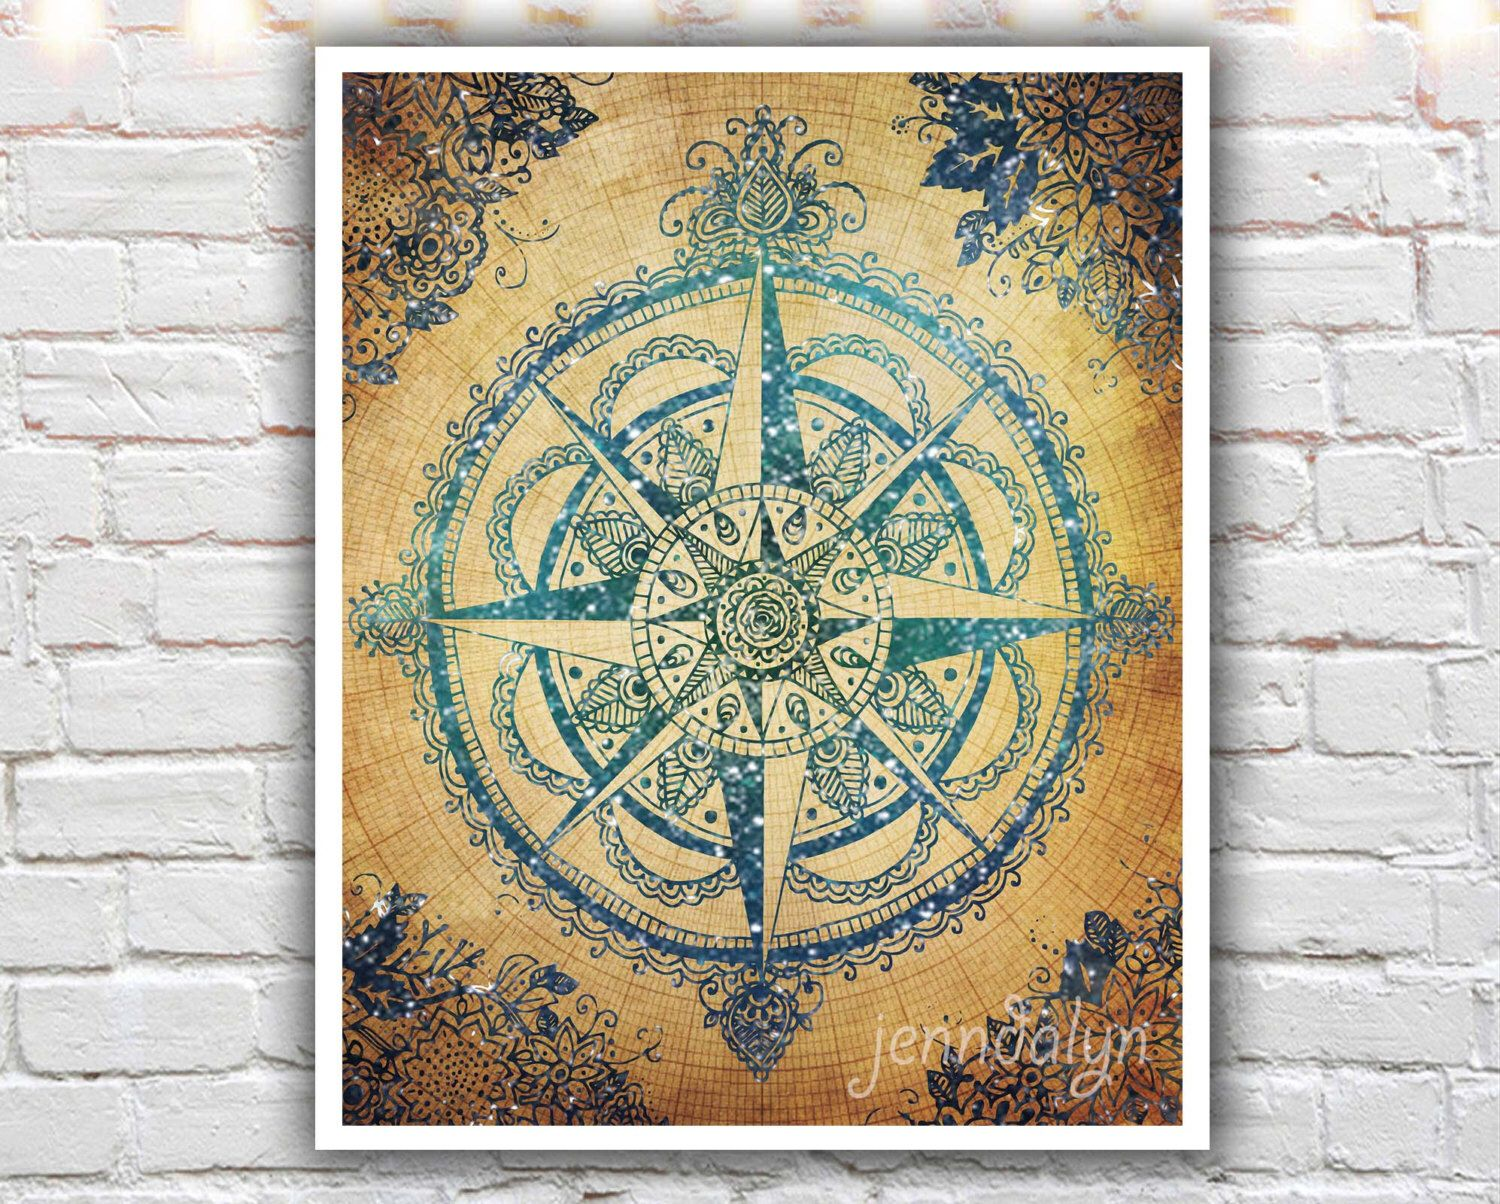 Voyager III - fine art print, compass rose print, travel art, wanderlust print, bohemian home decor, boho chic, illustration print by Jenndalyn on Etsy https://www.etsy.com/listing/186298432/voyager-iii-fine-art-print-compass-rose